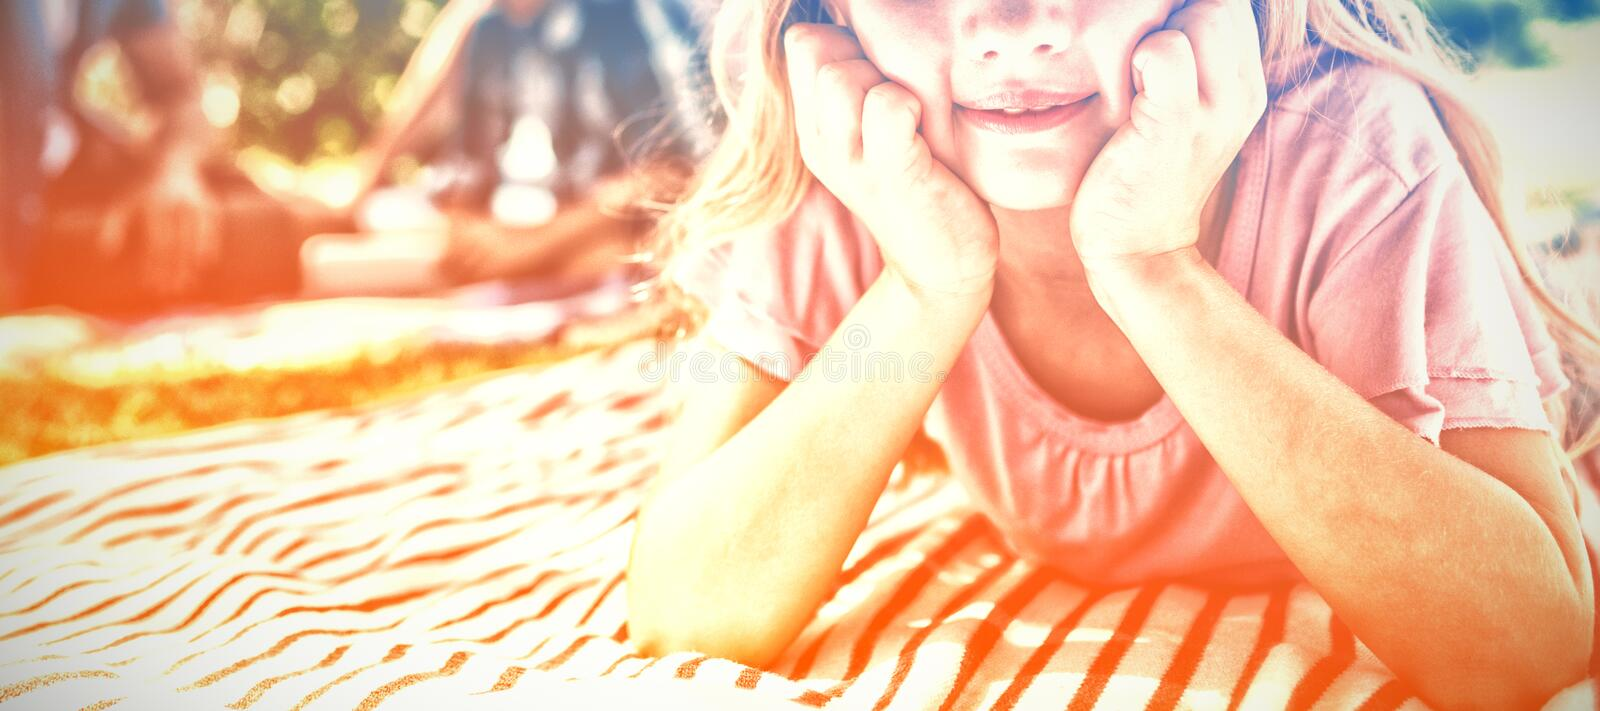 Smiling girl lying on blanket while family sitting in background royalty free stock photography